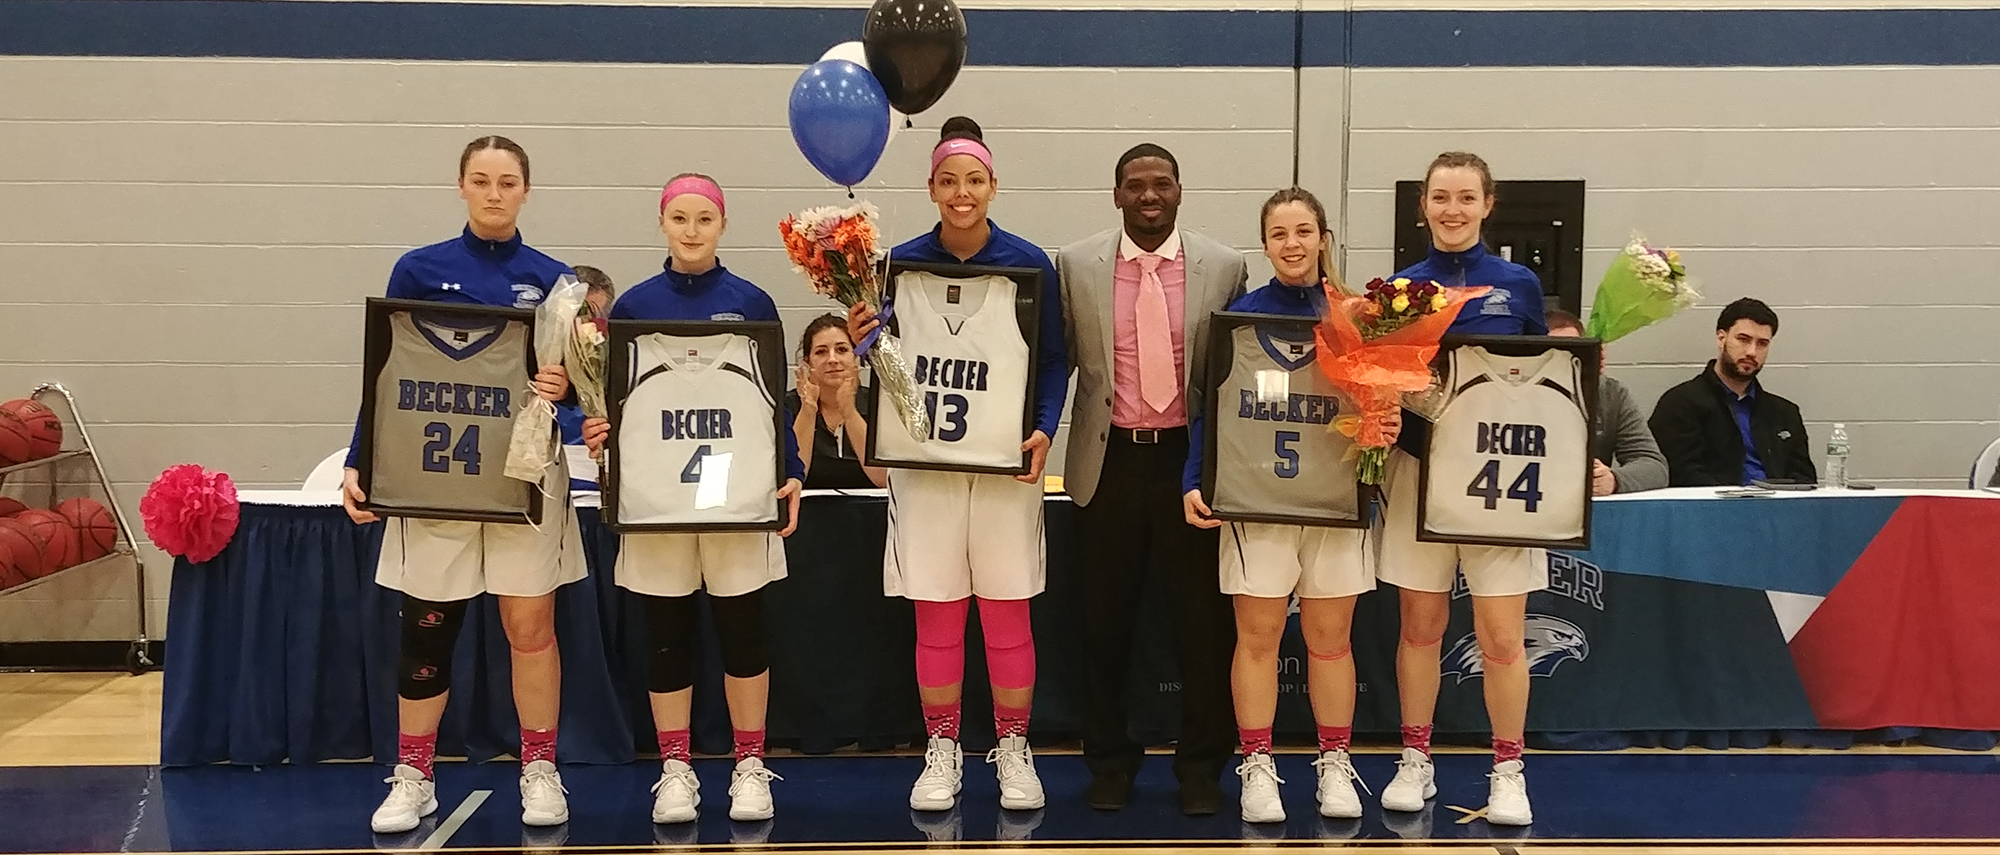 Women's Basketball - 2019 senior class